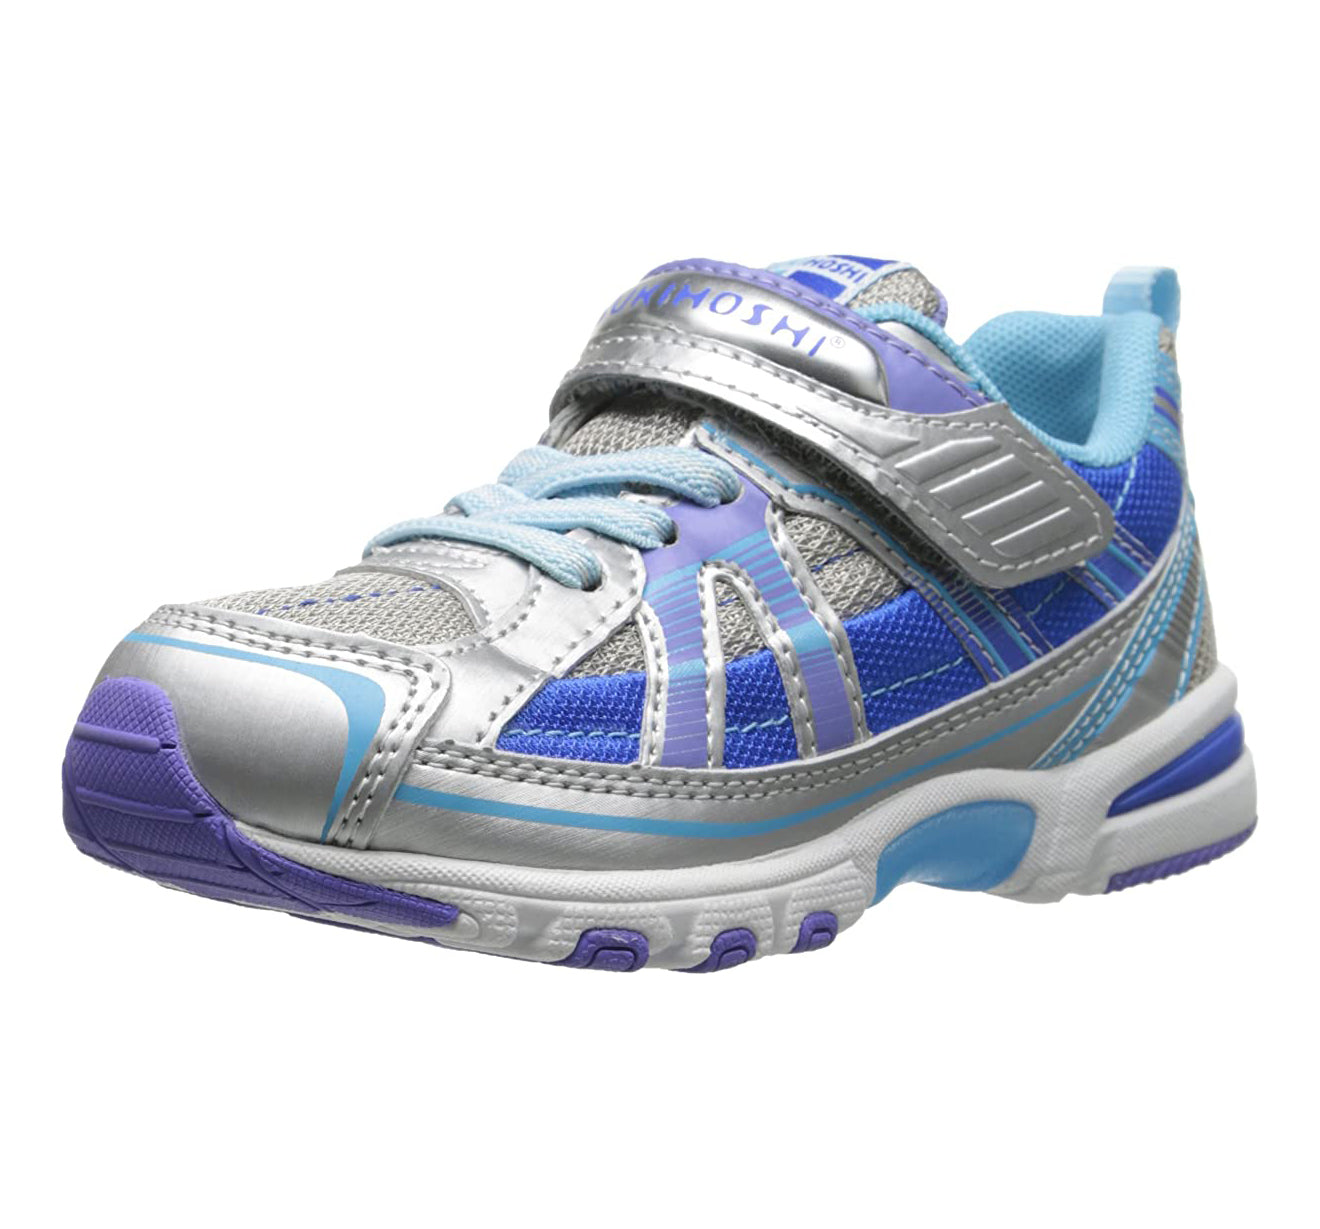 Child Tsukihoshi Storm Sneaker in Silver/Aqua from the front view